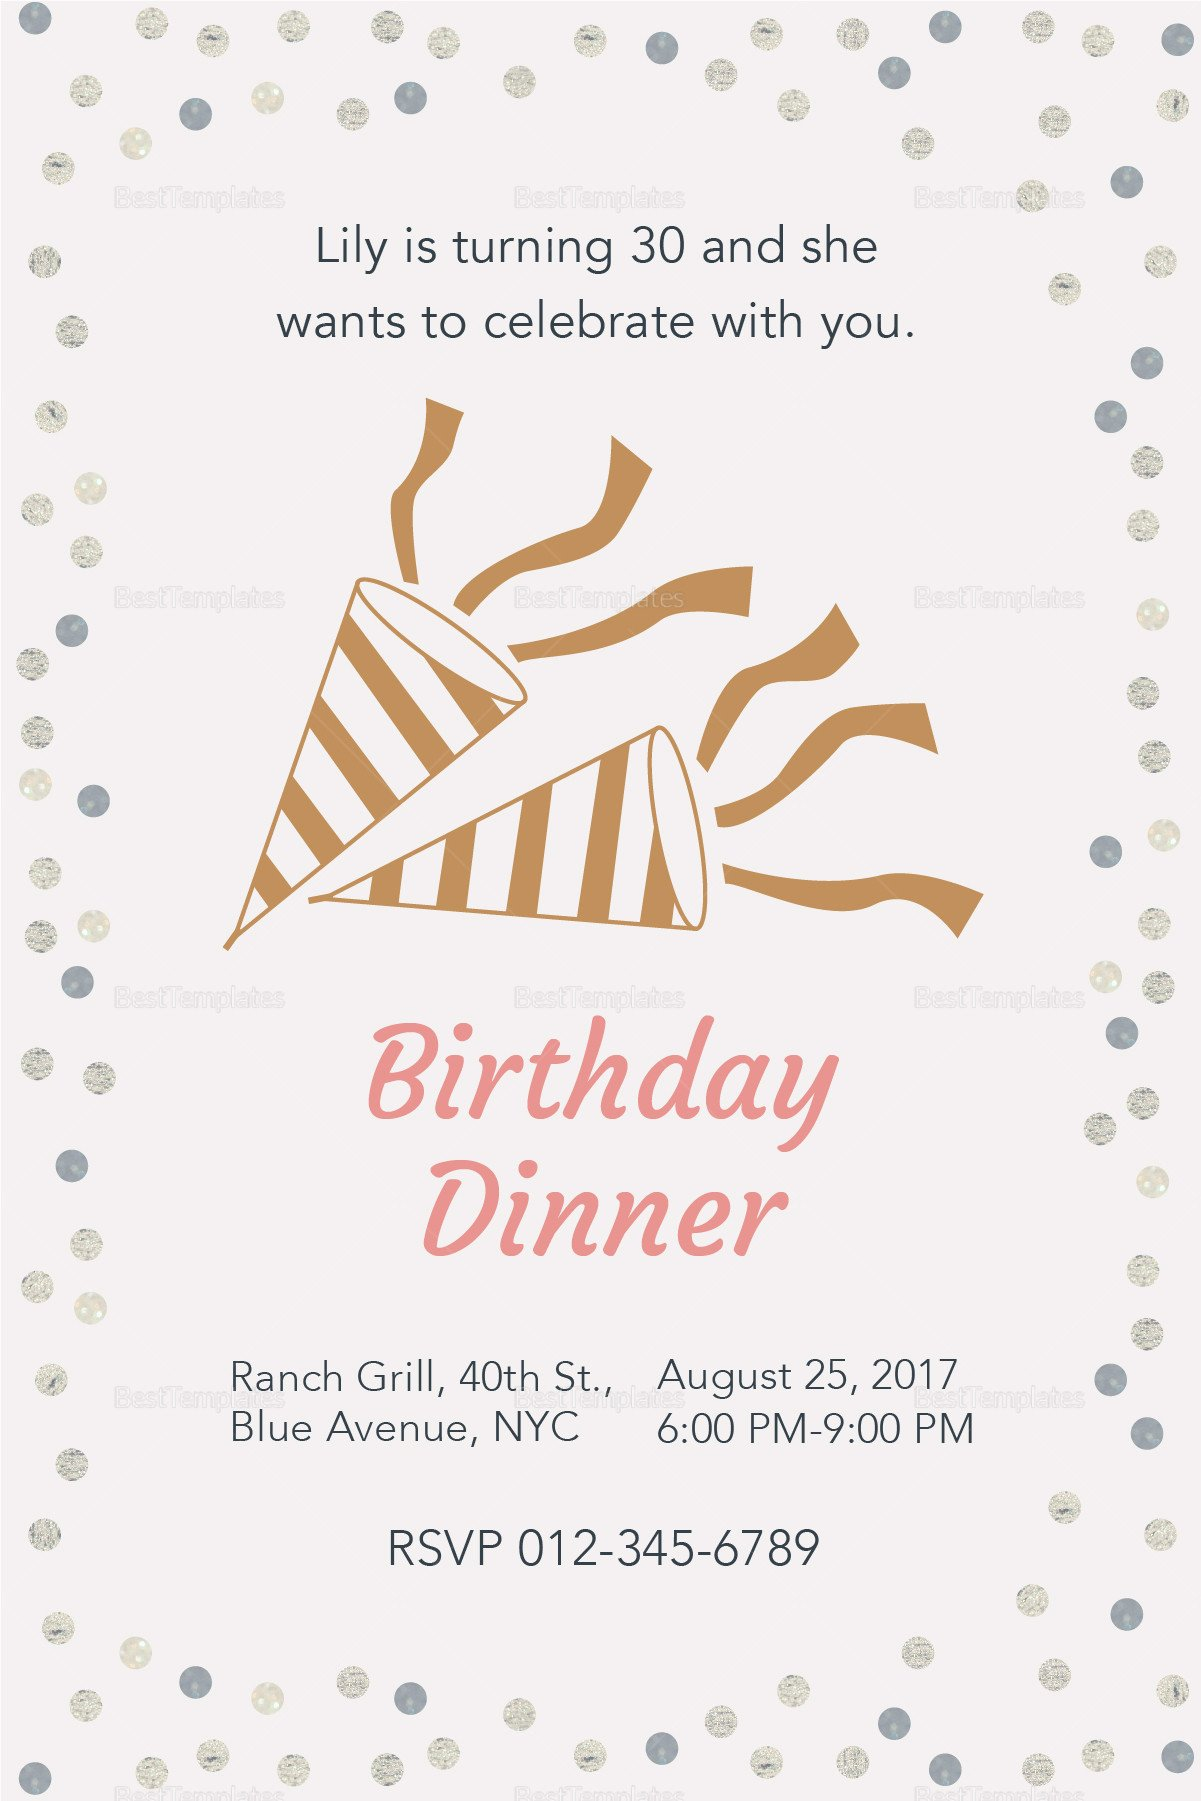 Dinner Party Invitation Templates Birthday Dinner Invitation Design Template In Psd Word